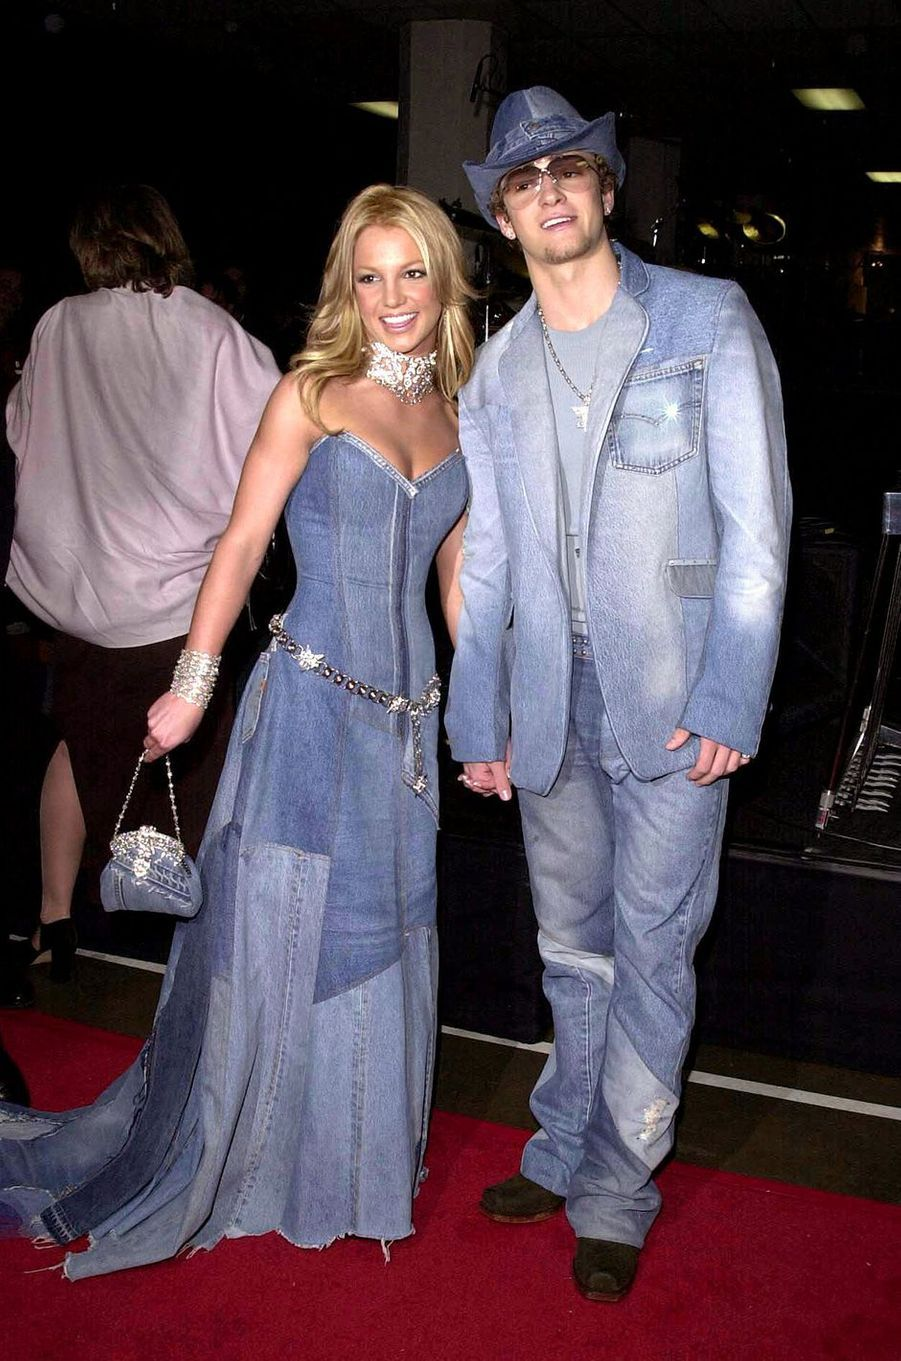 Britney Spears et Justin Timberlake à Los Angeles aux American Music Awards en janvier 2001